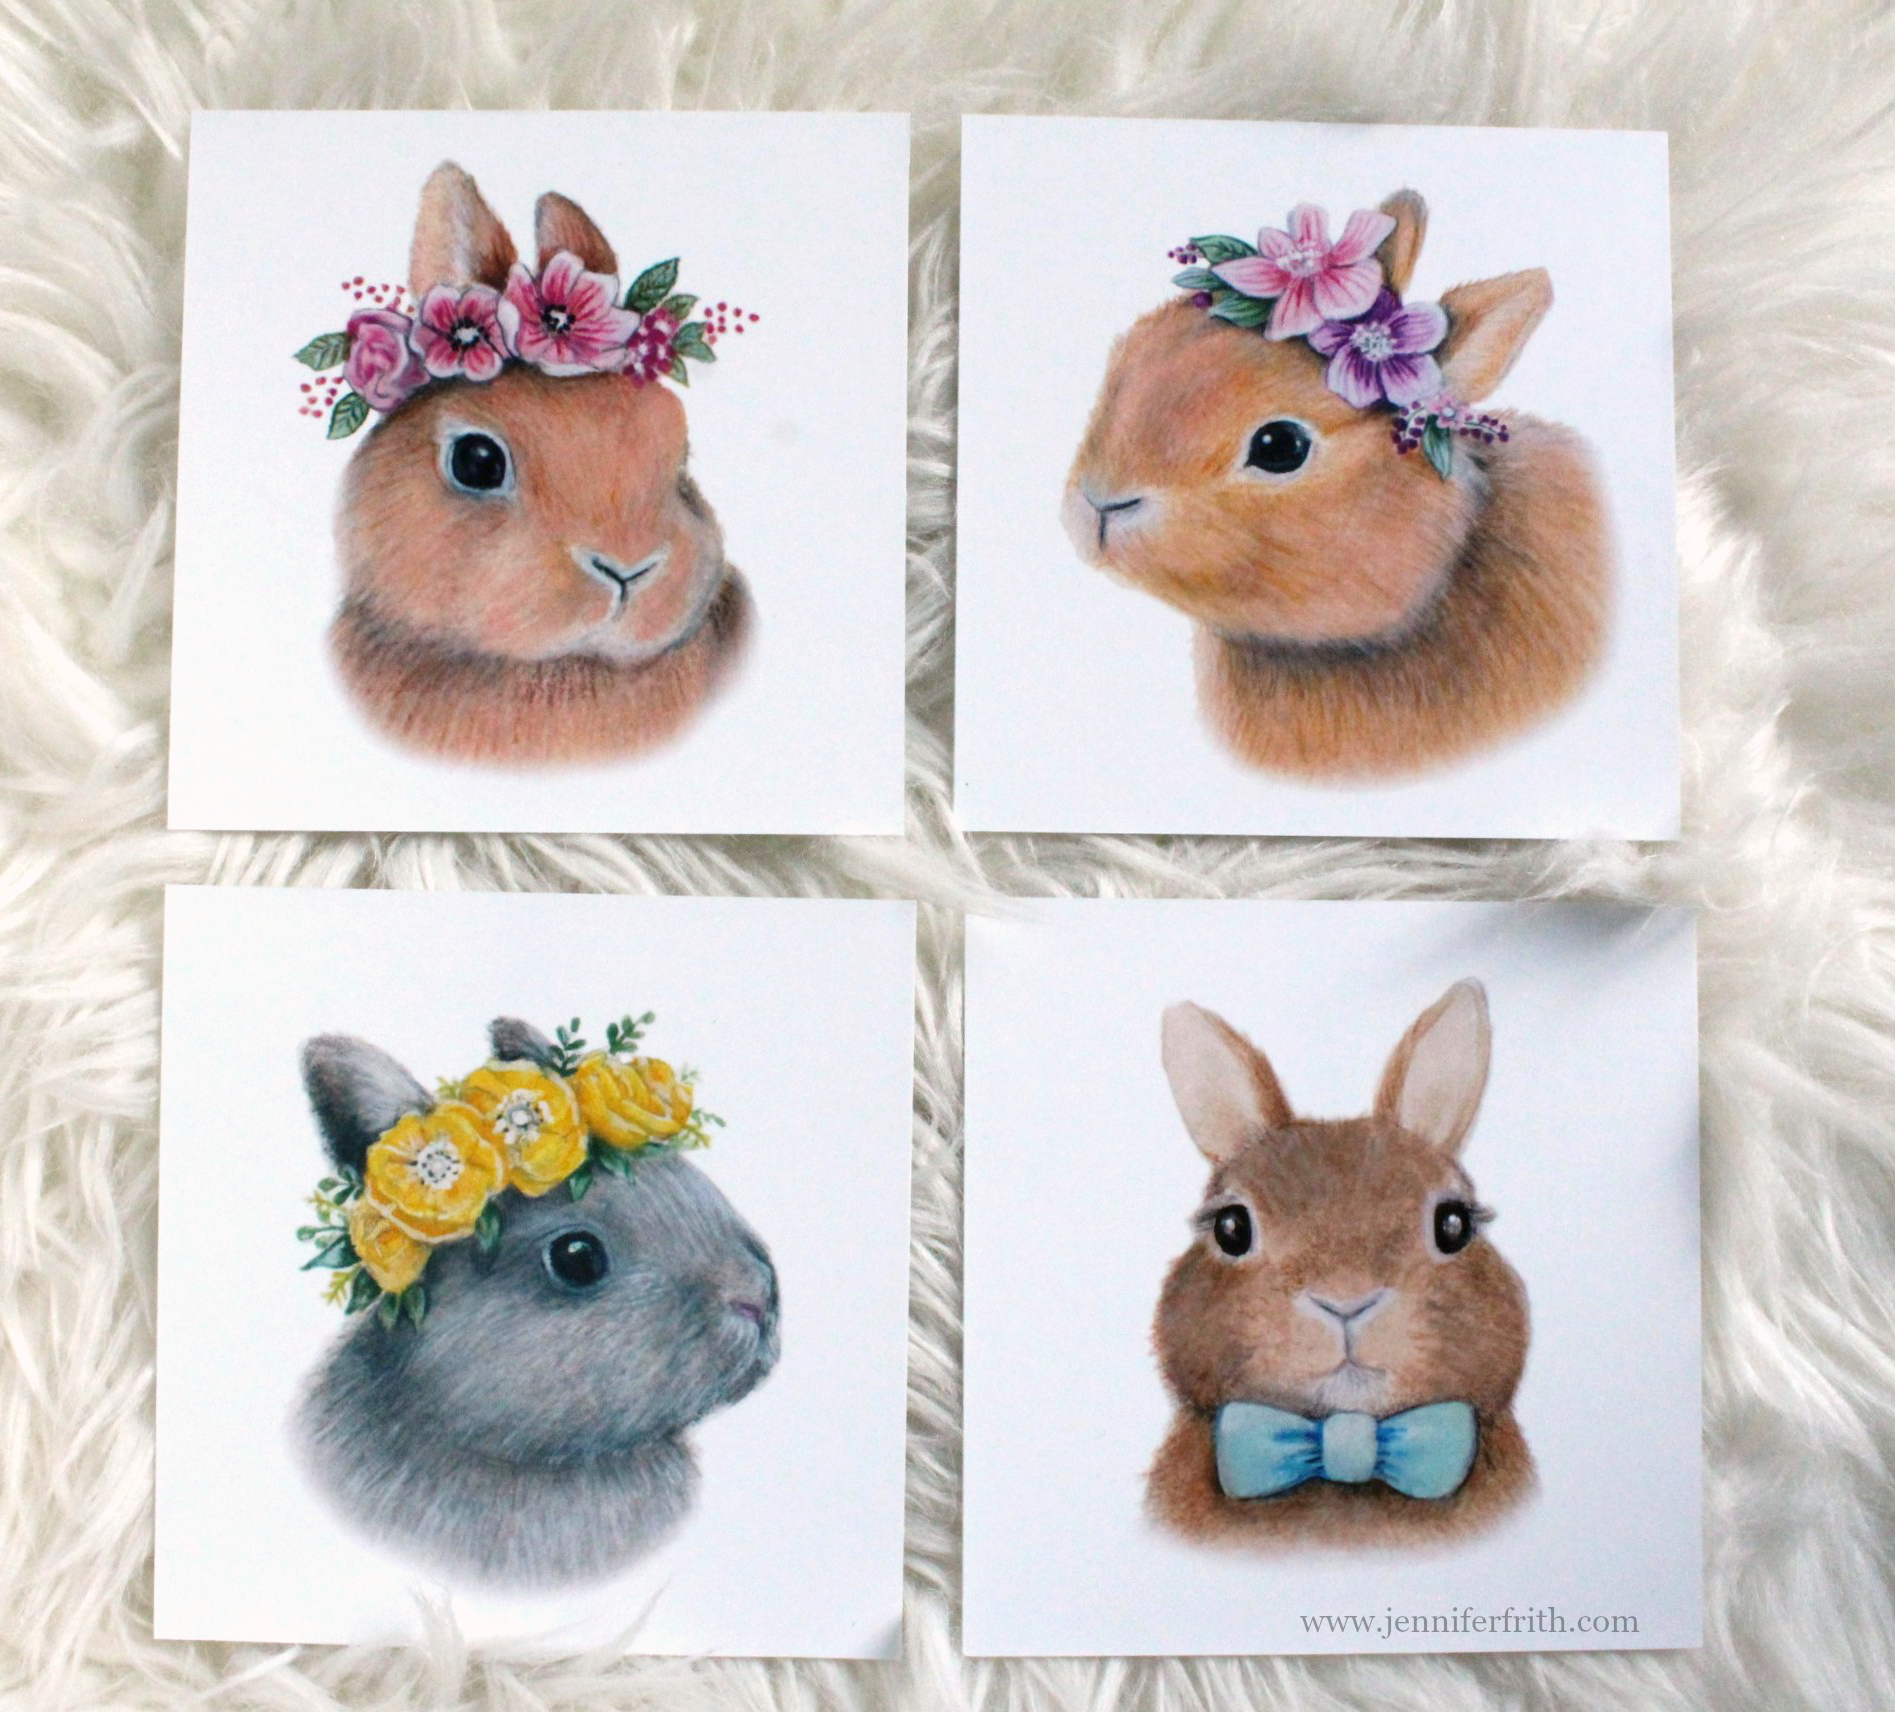 Bunny Illustrations for Sale by Jennifer Frith